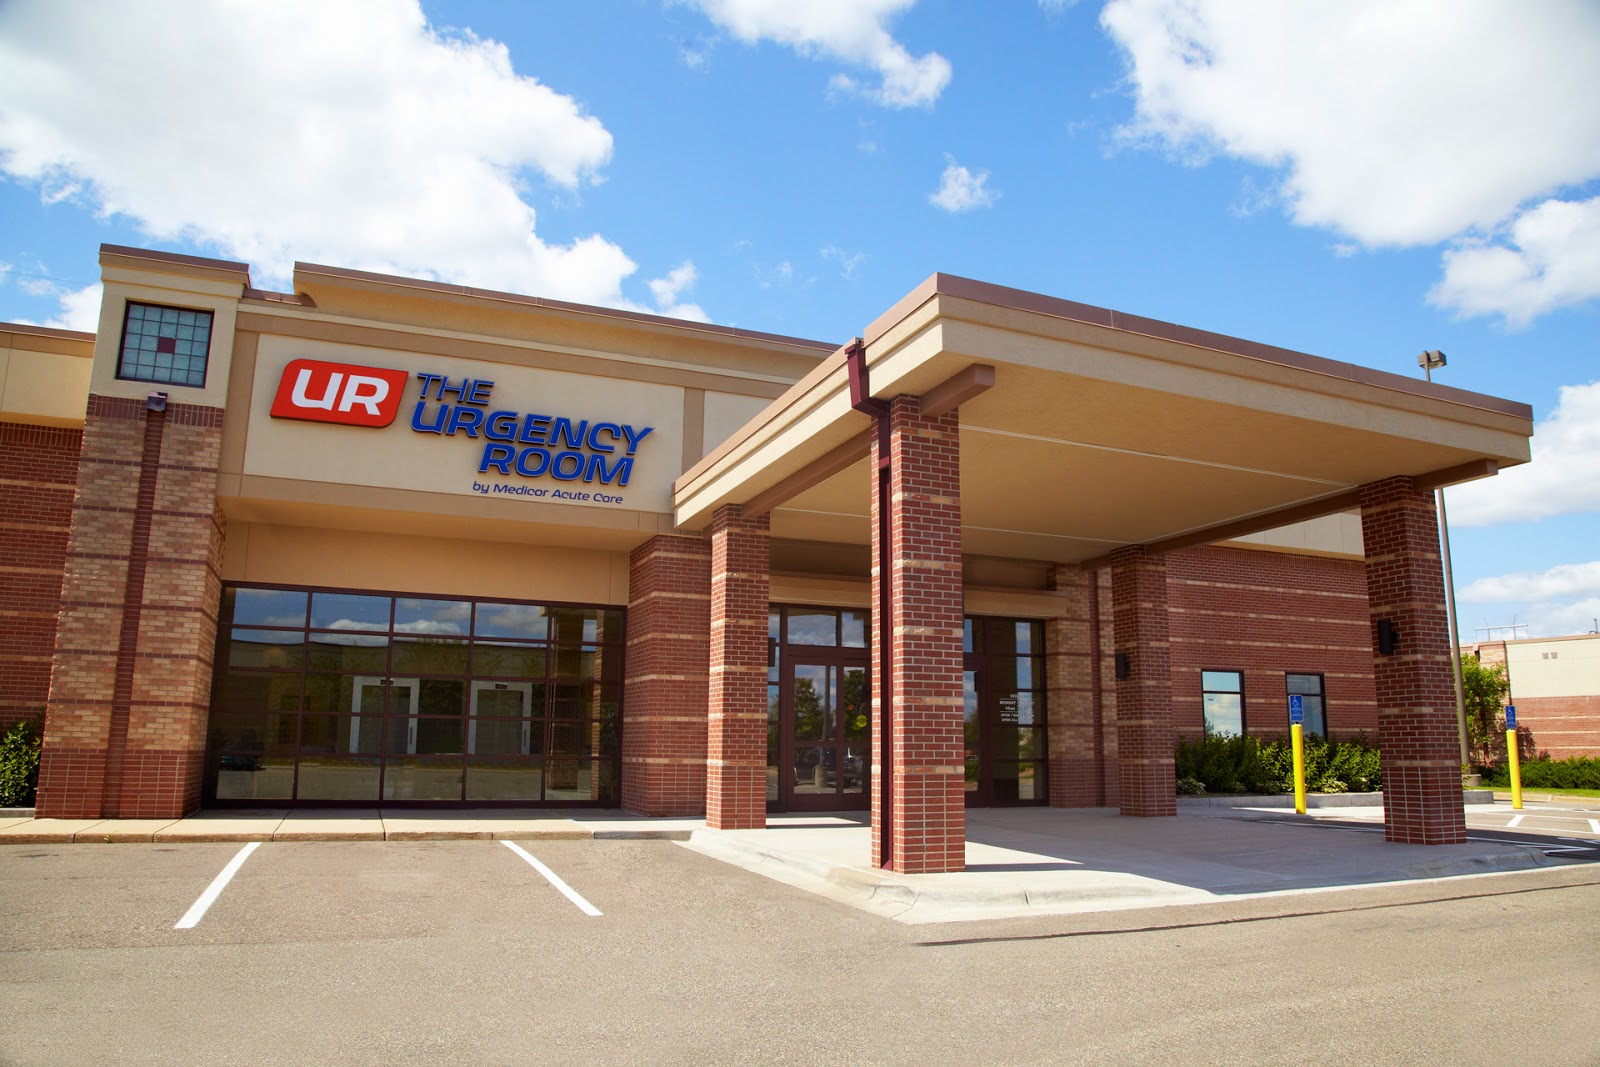 The Urgency Room Official Blog: Finding Urgent Care Near Me